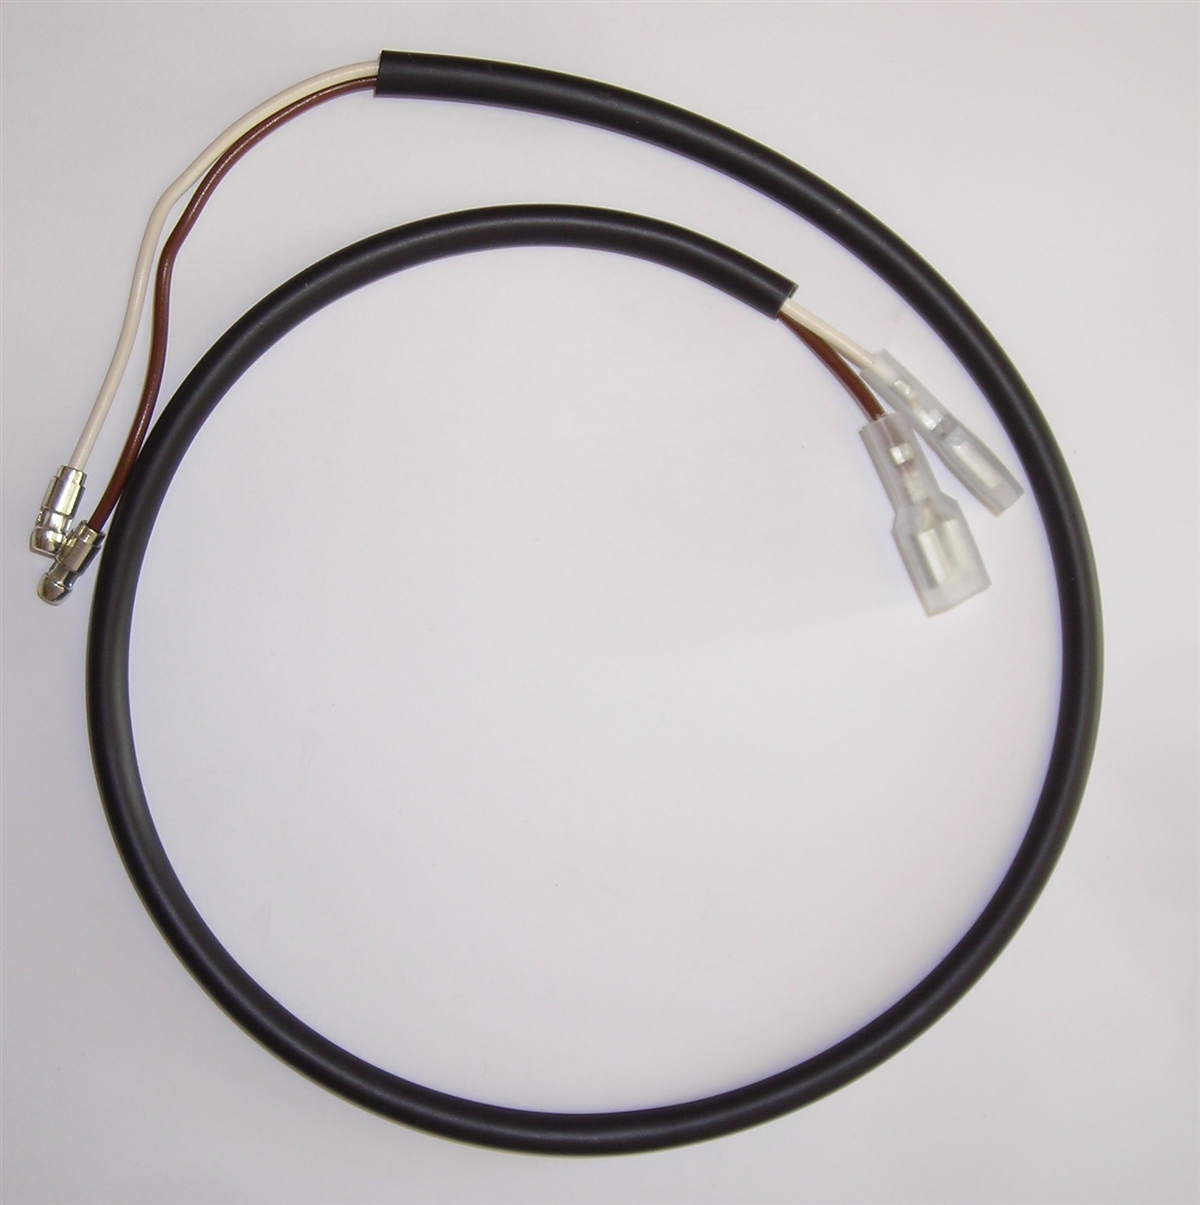 MC118PP 2?1374672623 commando 850cc mk3 motorcycle front brake switch wiring harness wiring harness for motorcycles at crackthecode.co